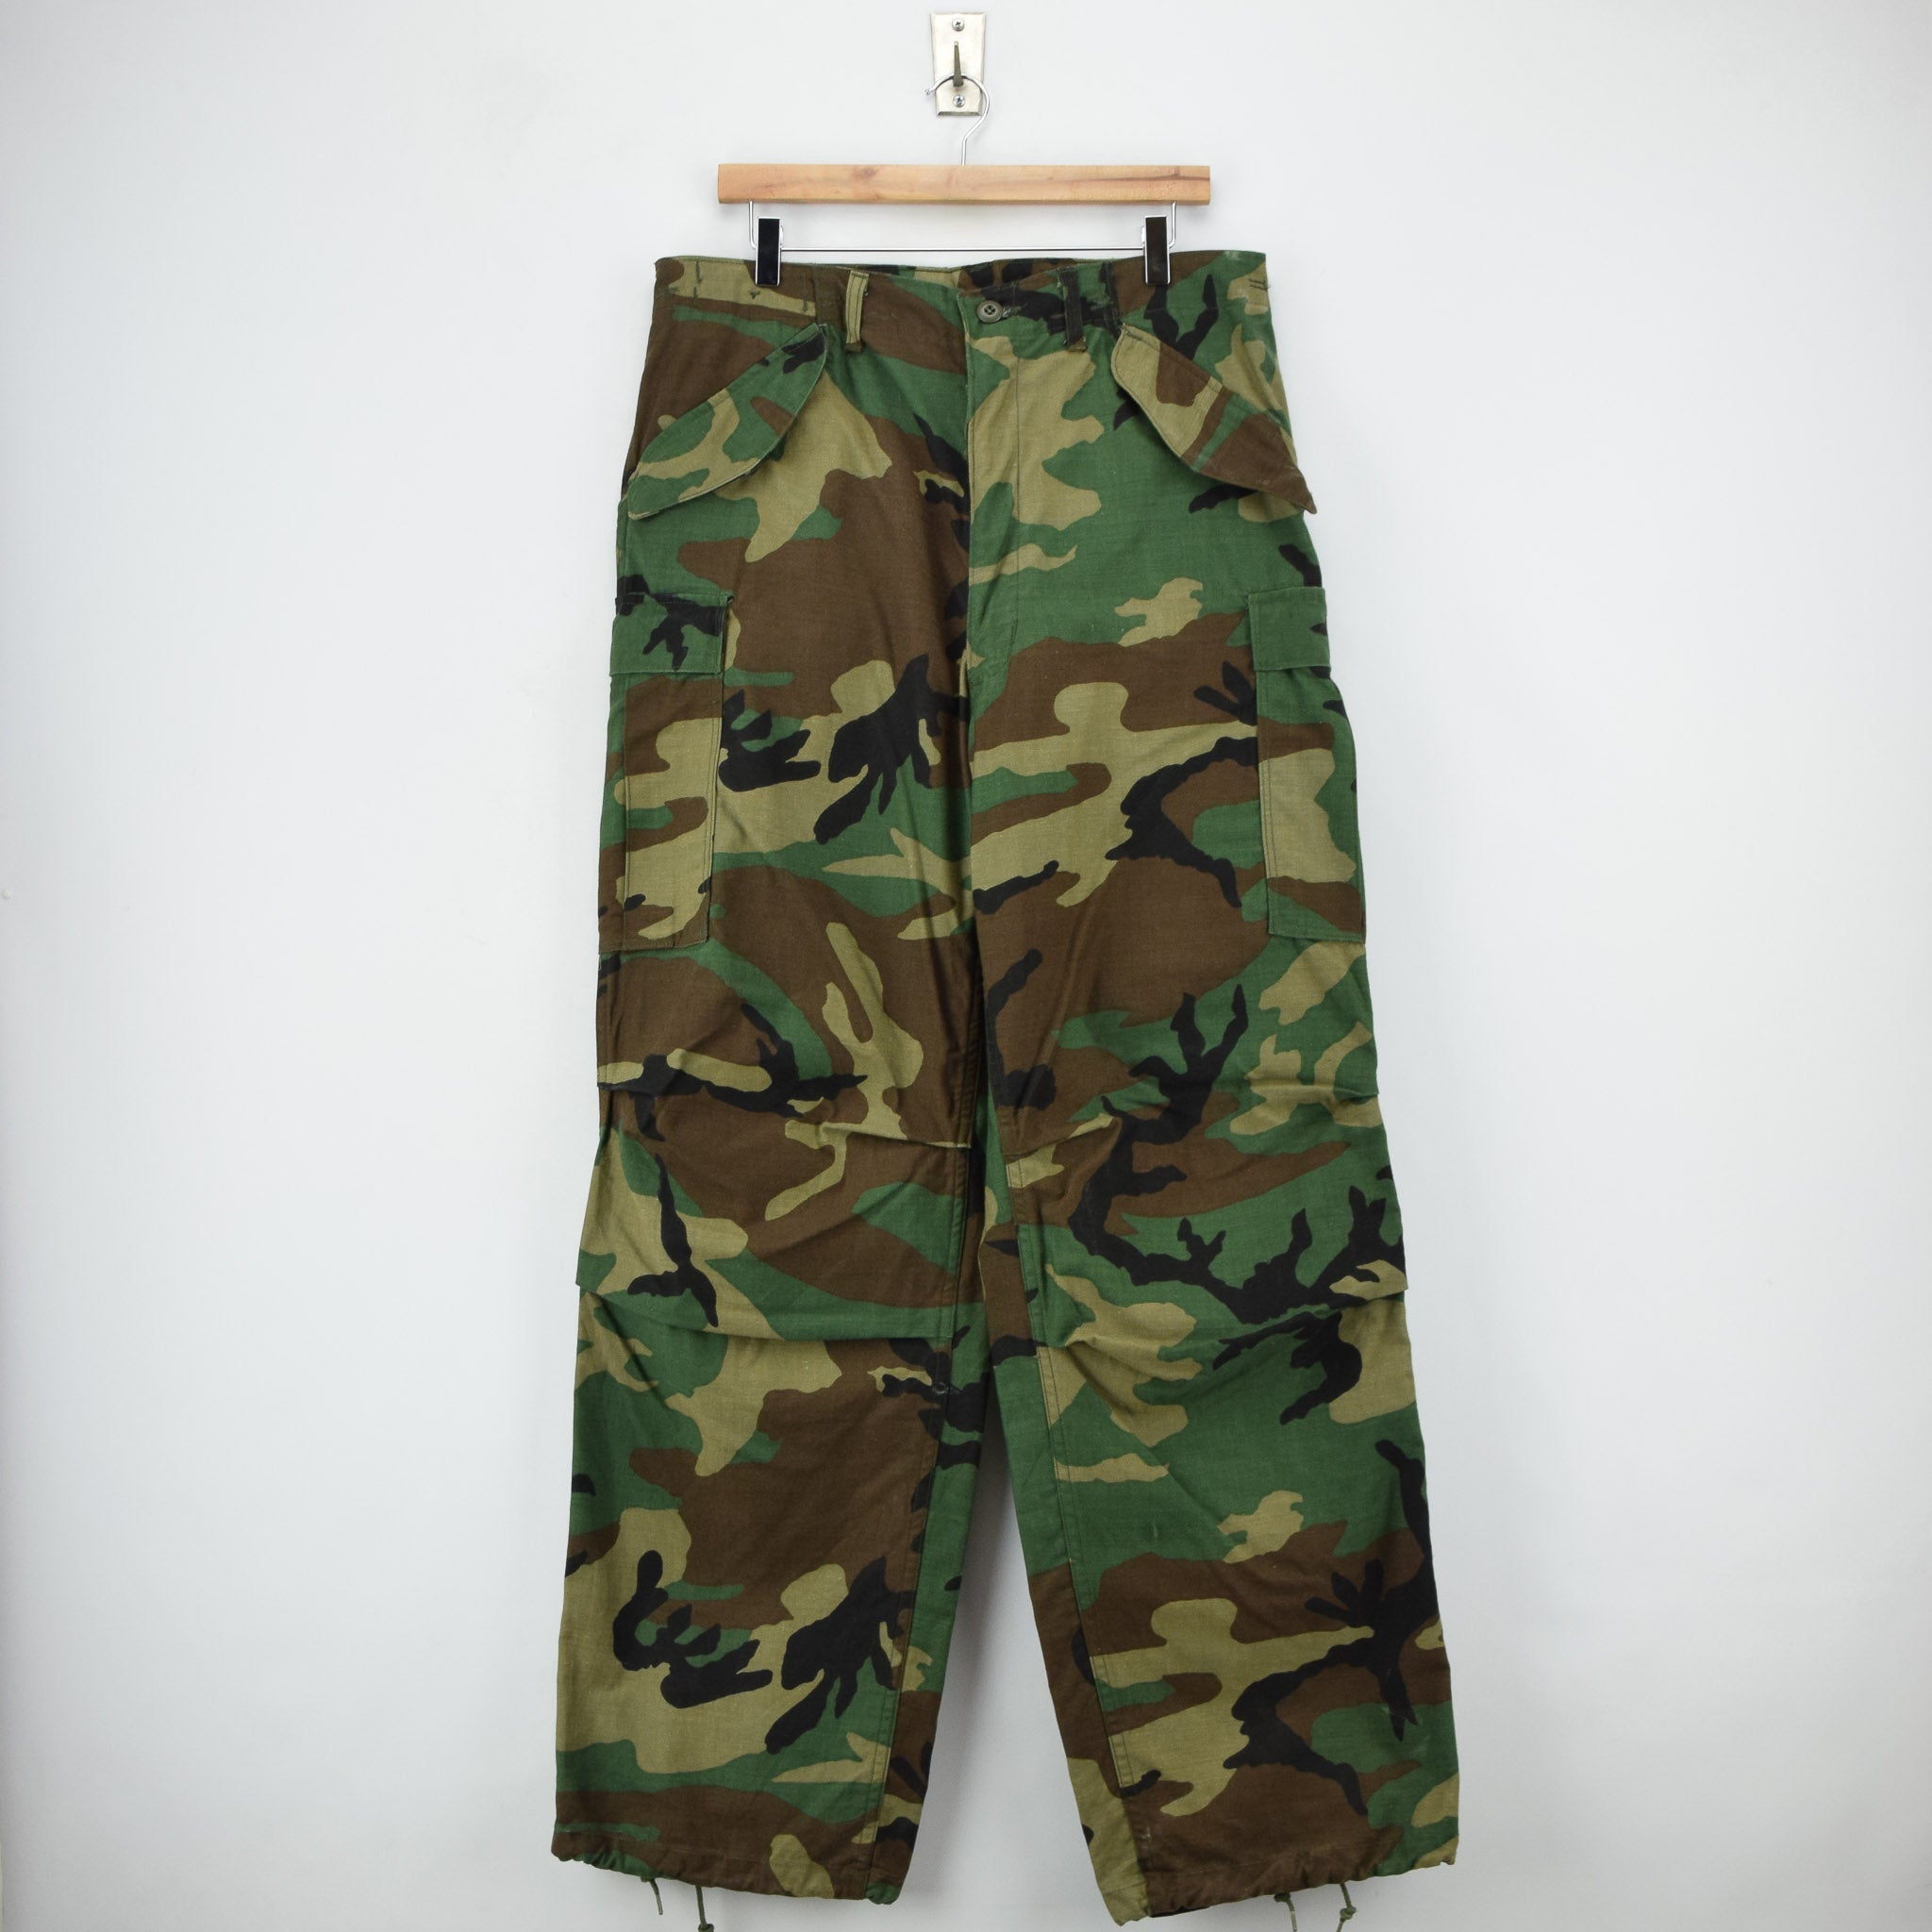 Vintage 80s US Army Camo Cold Weather Military Combat Field Trousers M Long front